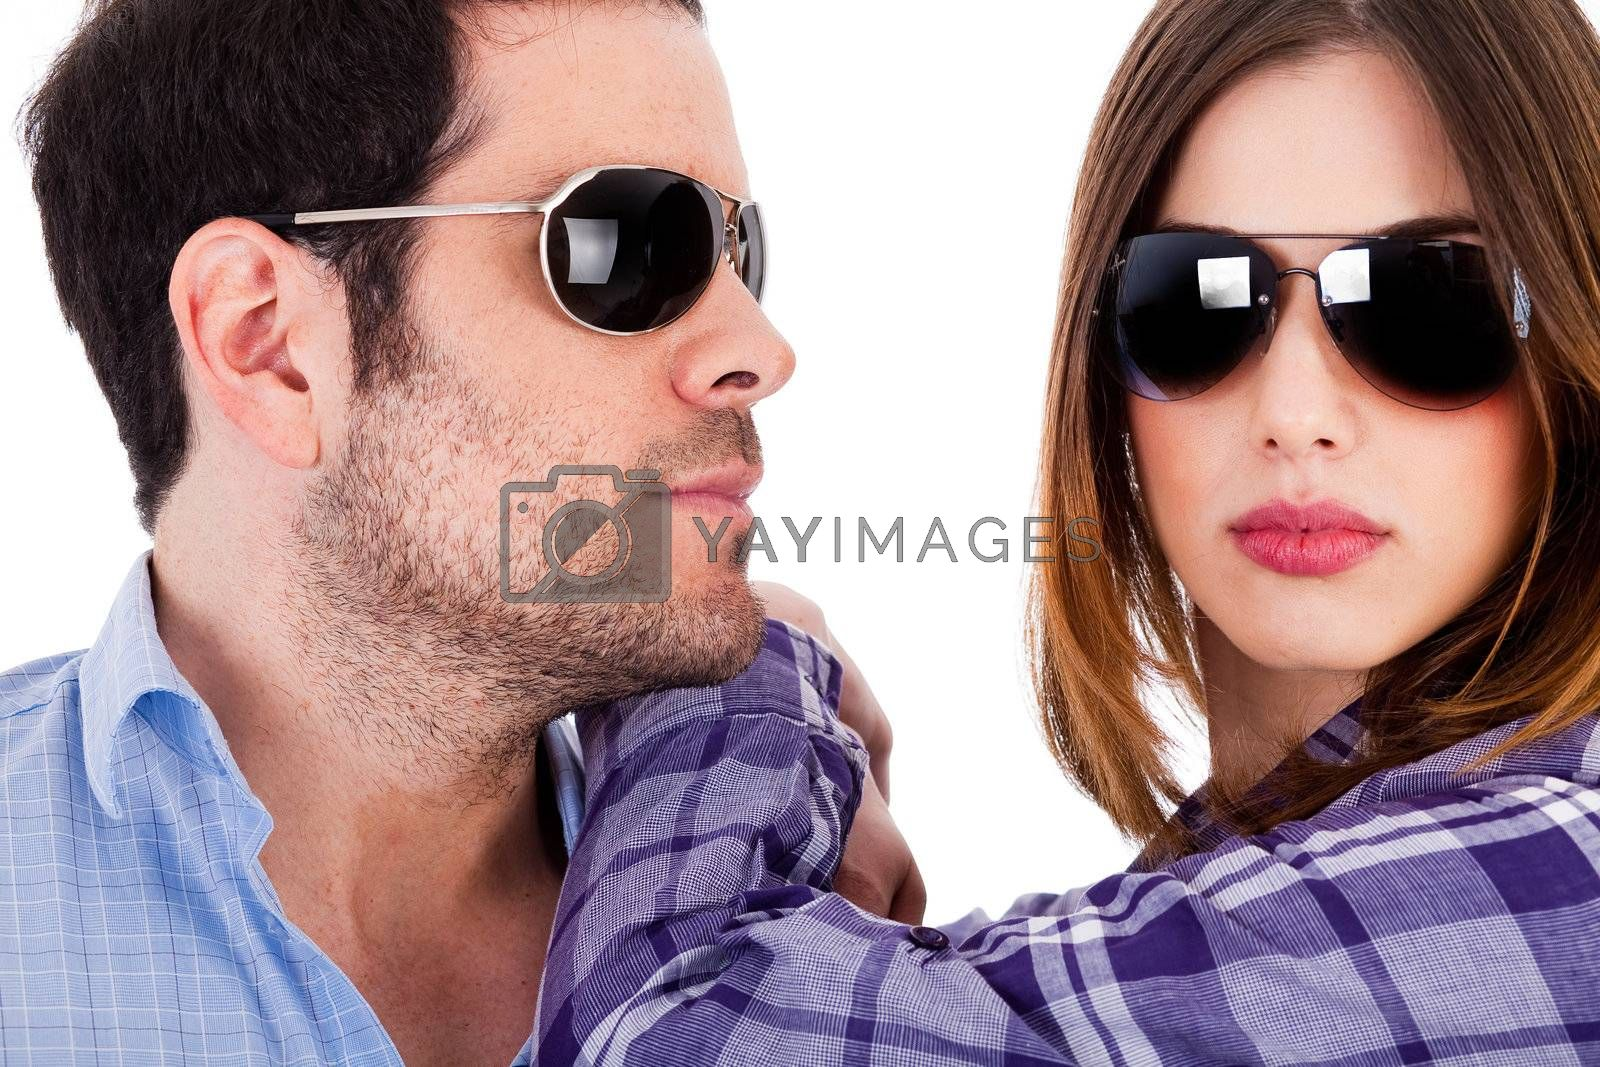 Closeup shot of fashion models wearing sunglasses on a isolated background